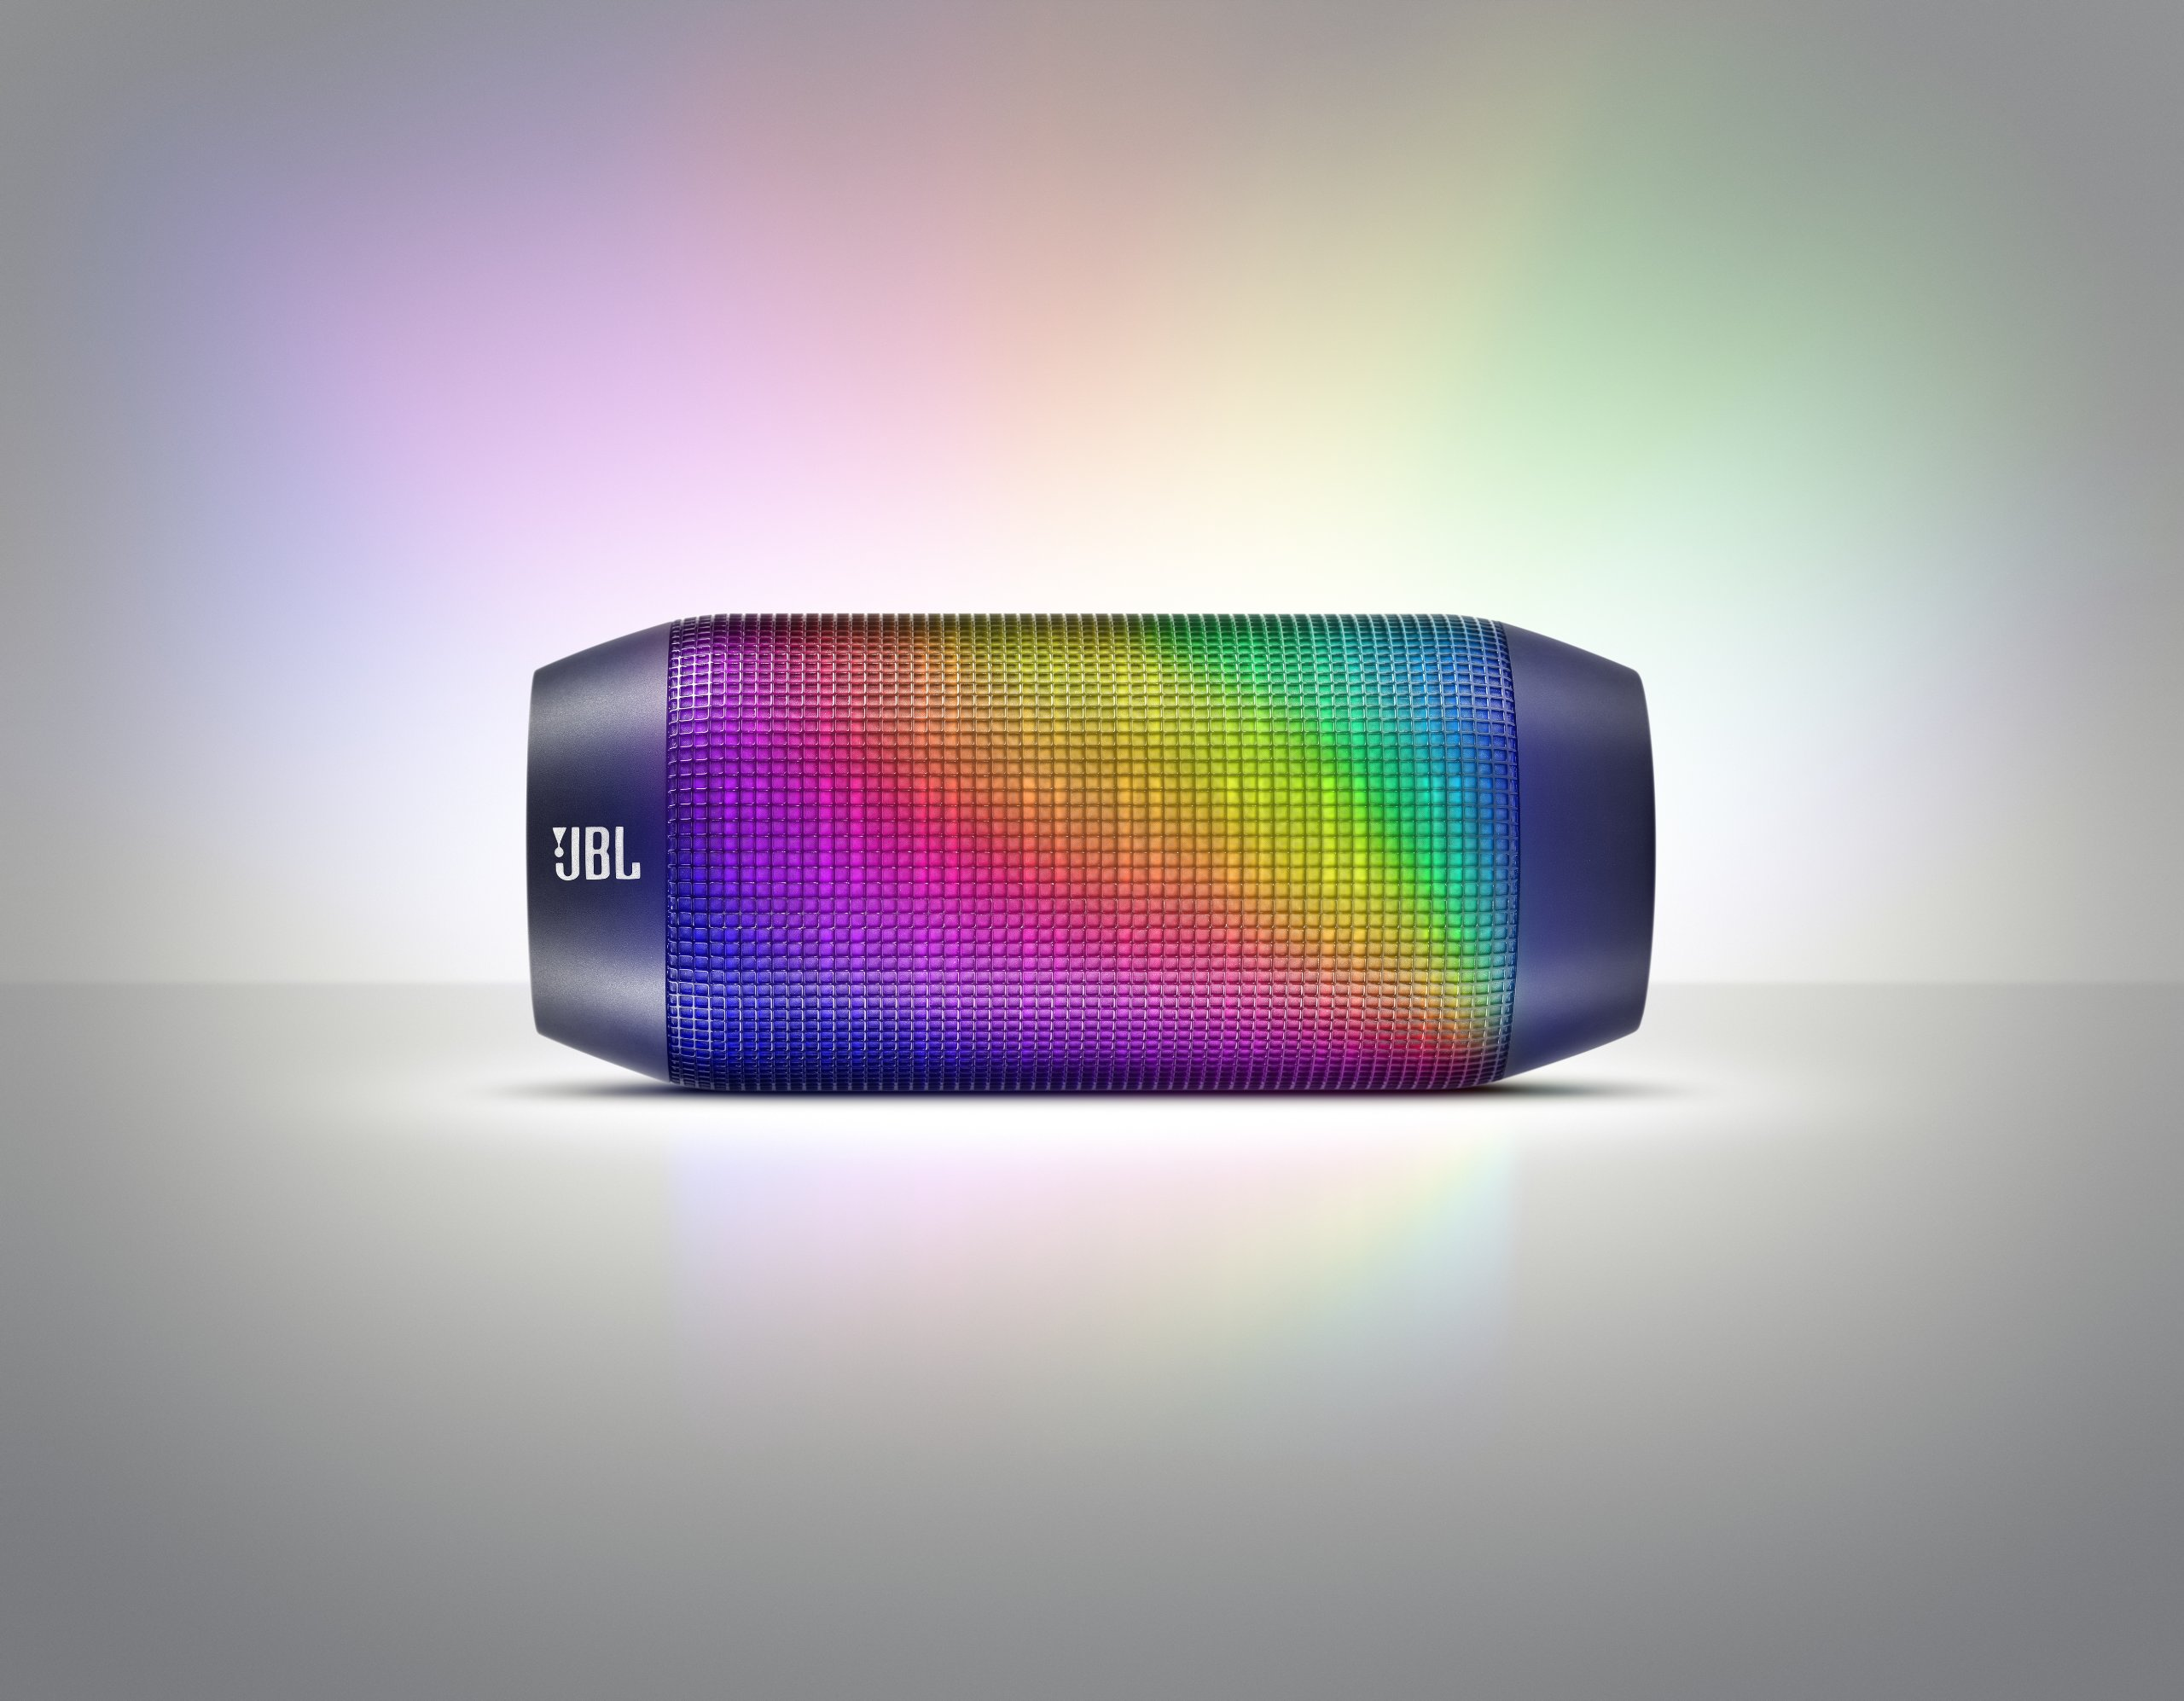 JBL Pulse Wireless Bluetooth Speaker with LED lights and NFC Pairing (Black) by JBL (Image #8)